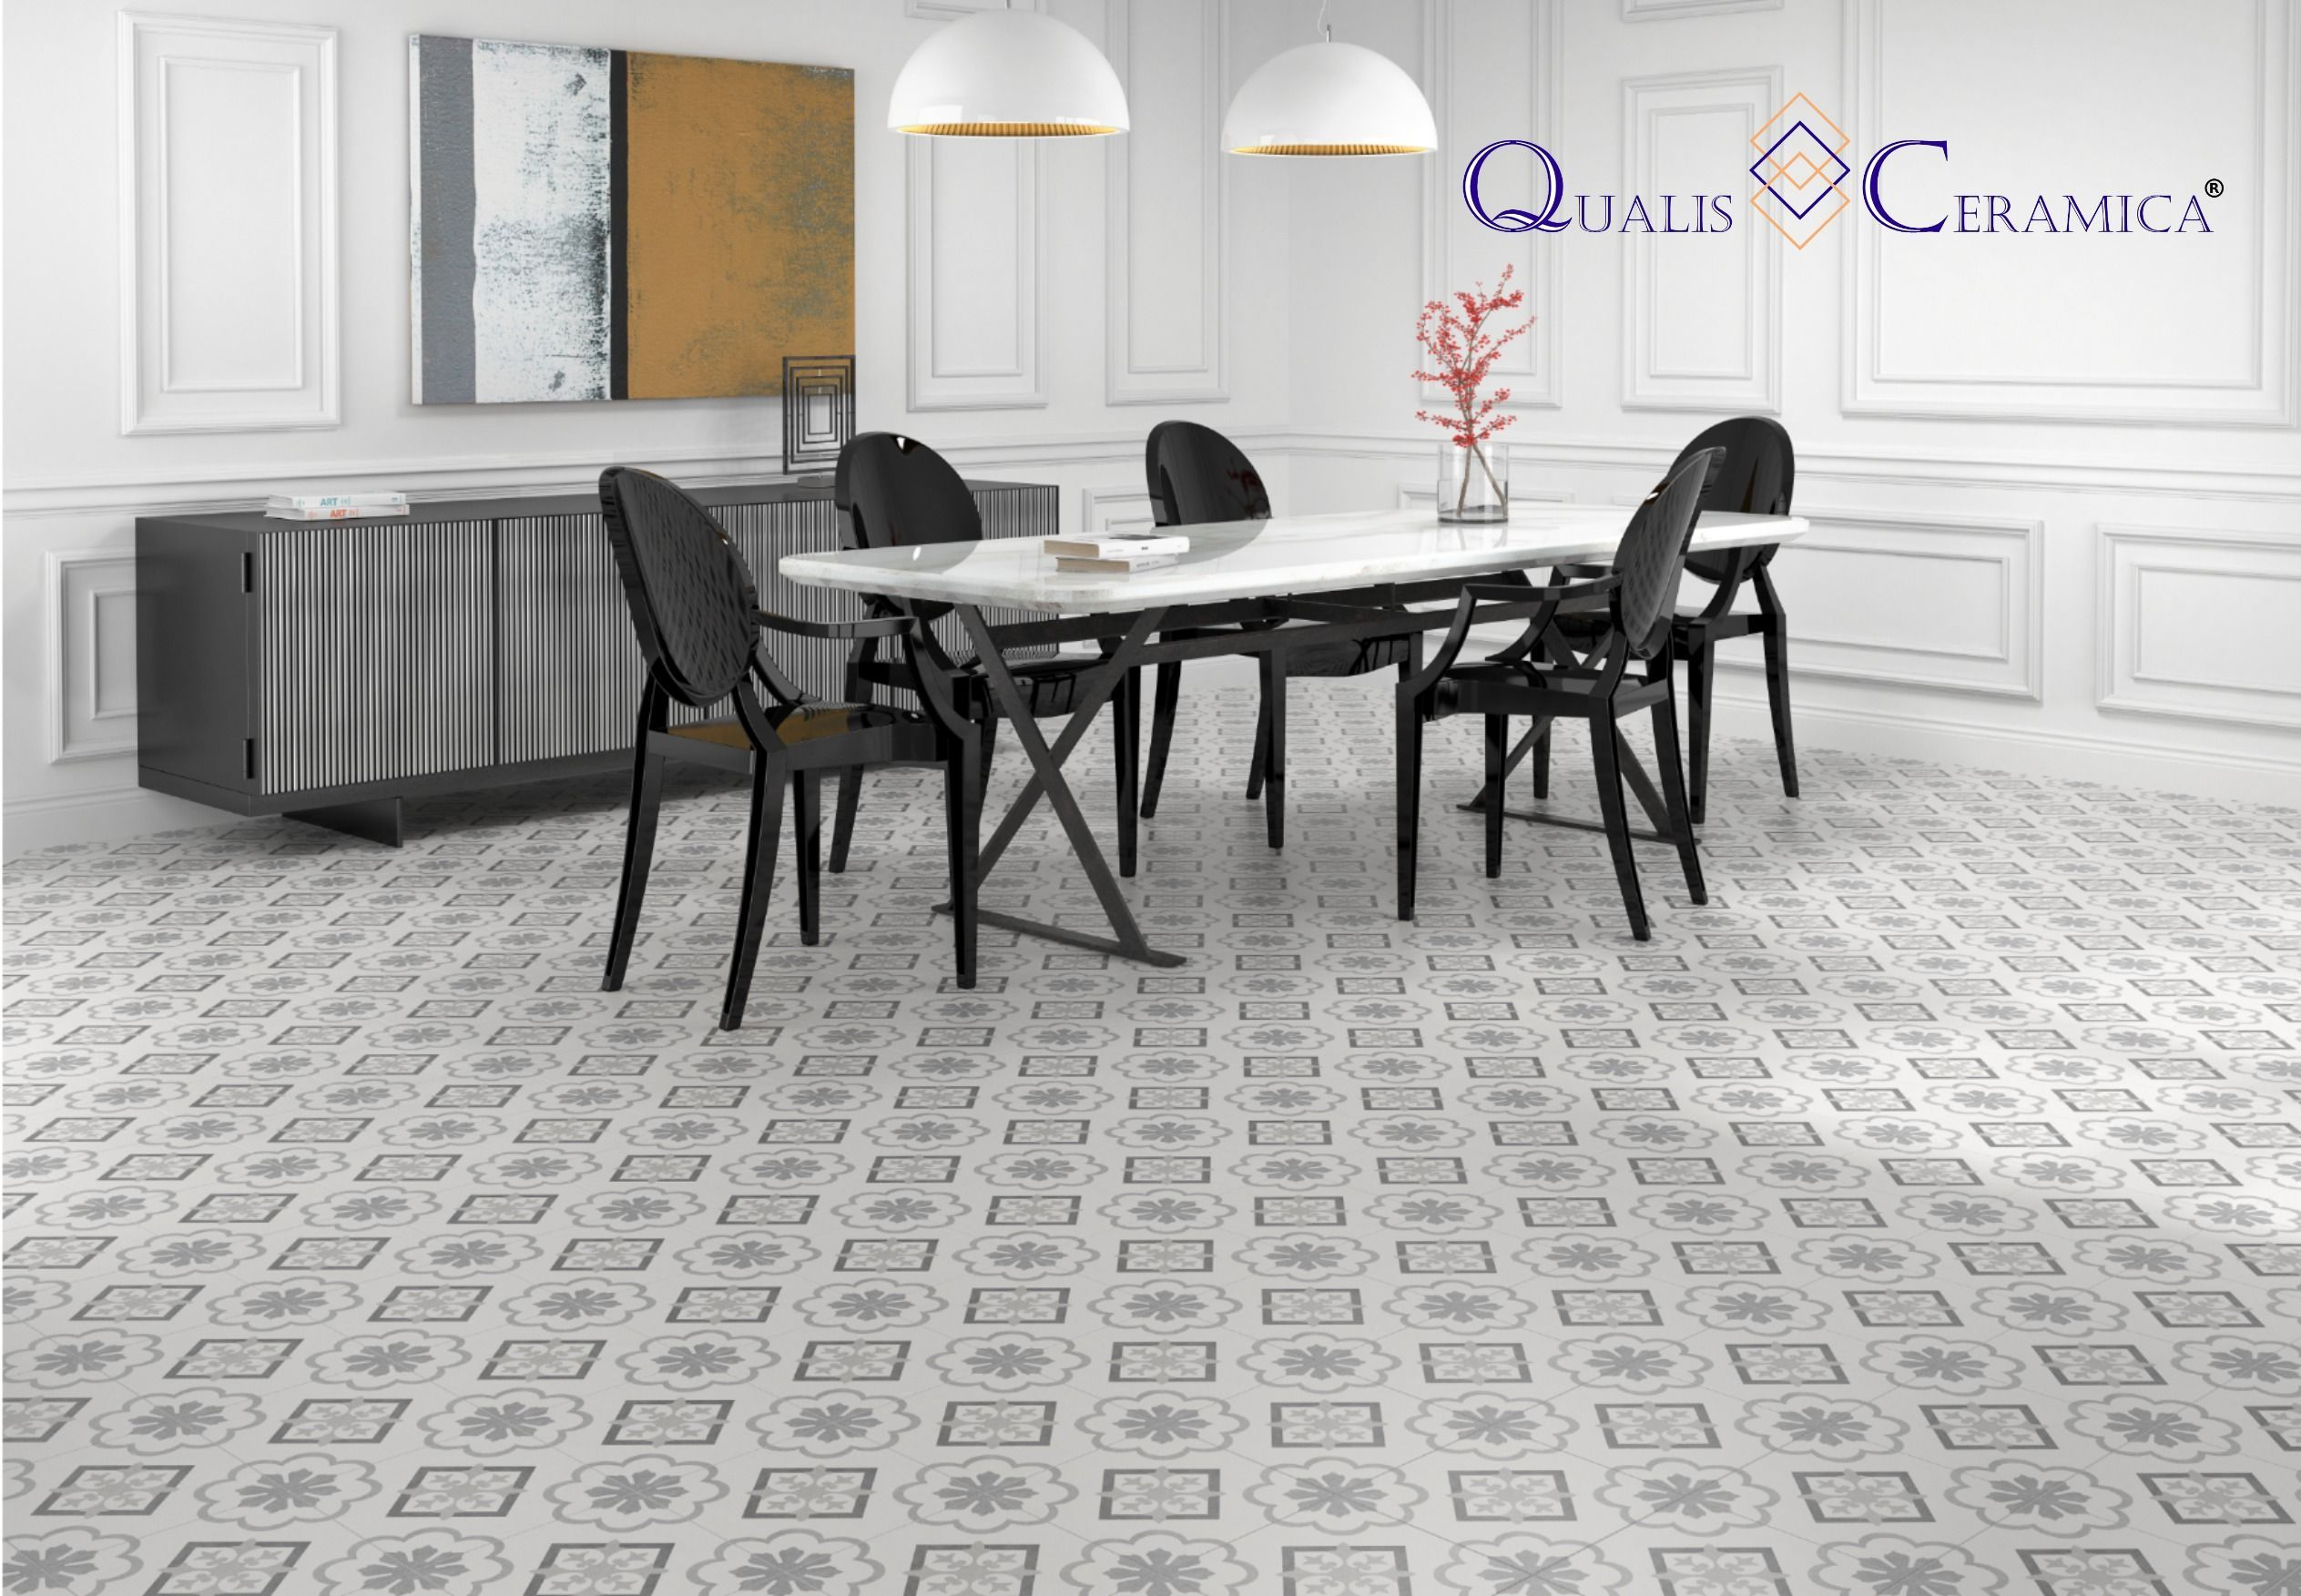 Qualis Ceramica Gibraltar Catalan Gris 10x10 Cement Look Porcelain Tile Floor And Wall Idea Q In 2020 Porcelain Floor Tiles Slip Resistant Tiles Entryway Flooring